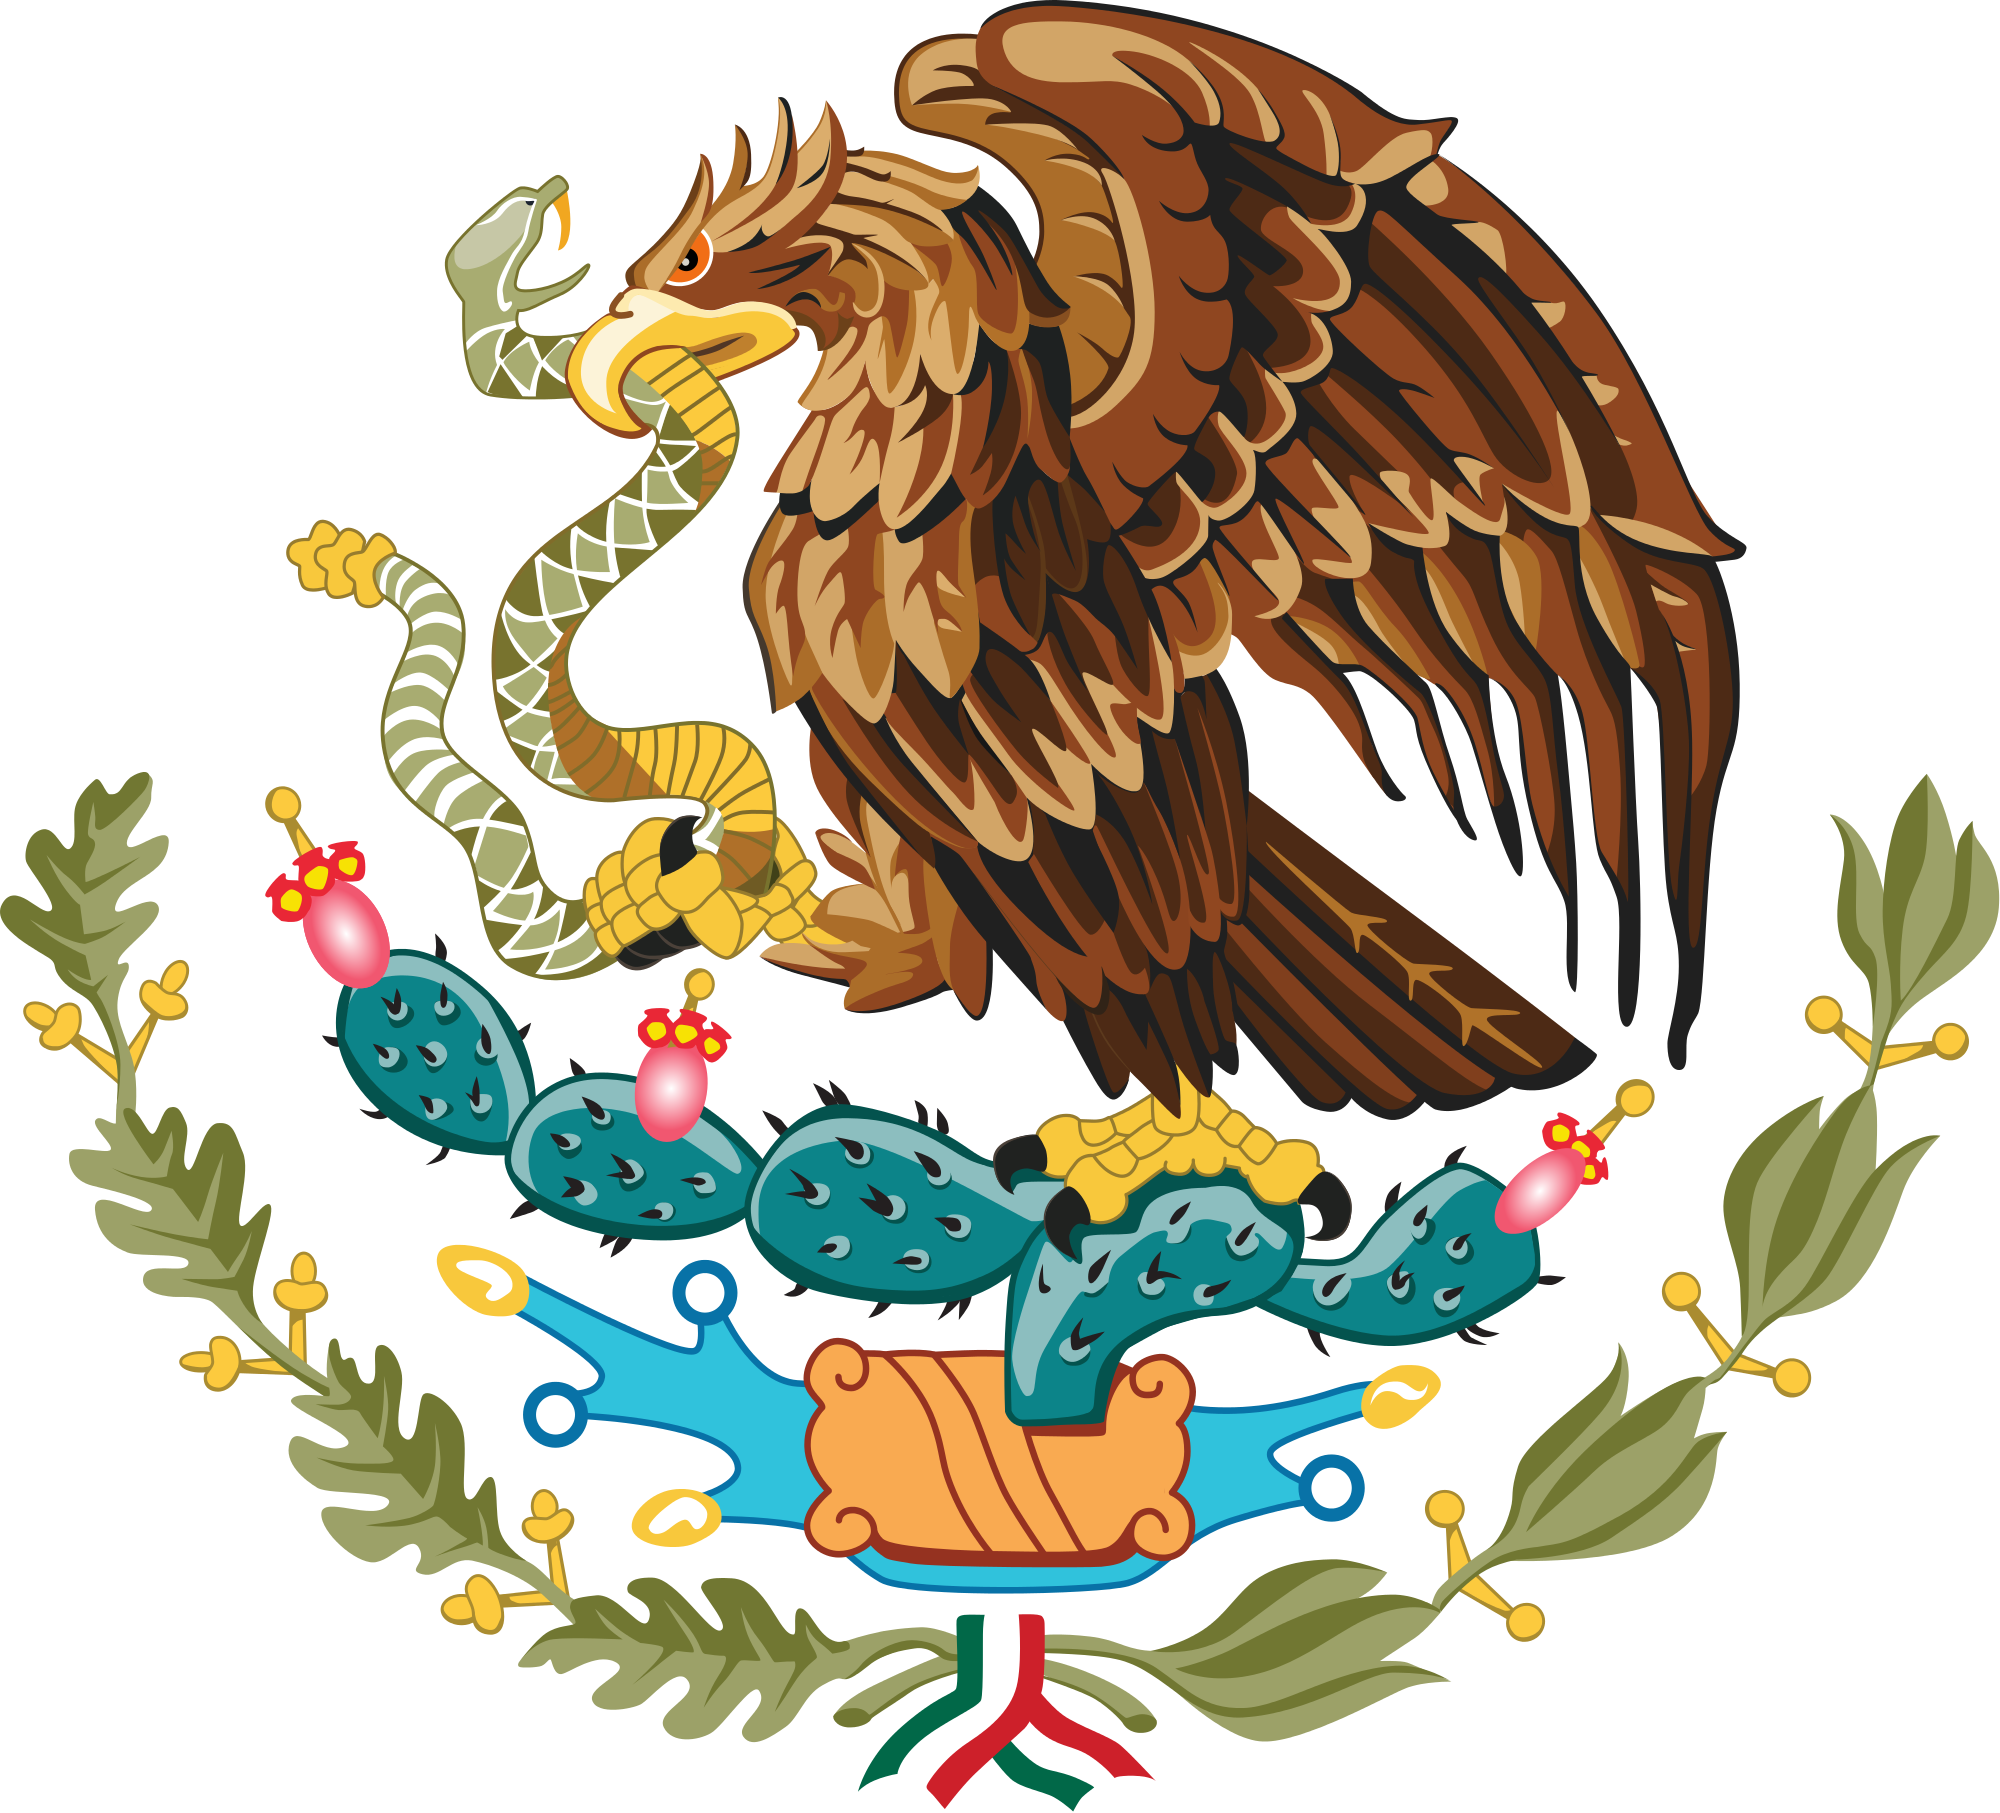 Eagle wearing a crown clipart image black and white stock Coat of arms of Mexico - Wikipedia, the free encyclopedia | 16 de ... image black and white stock